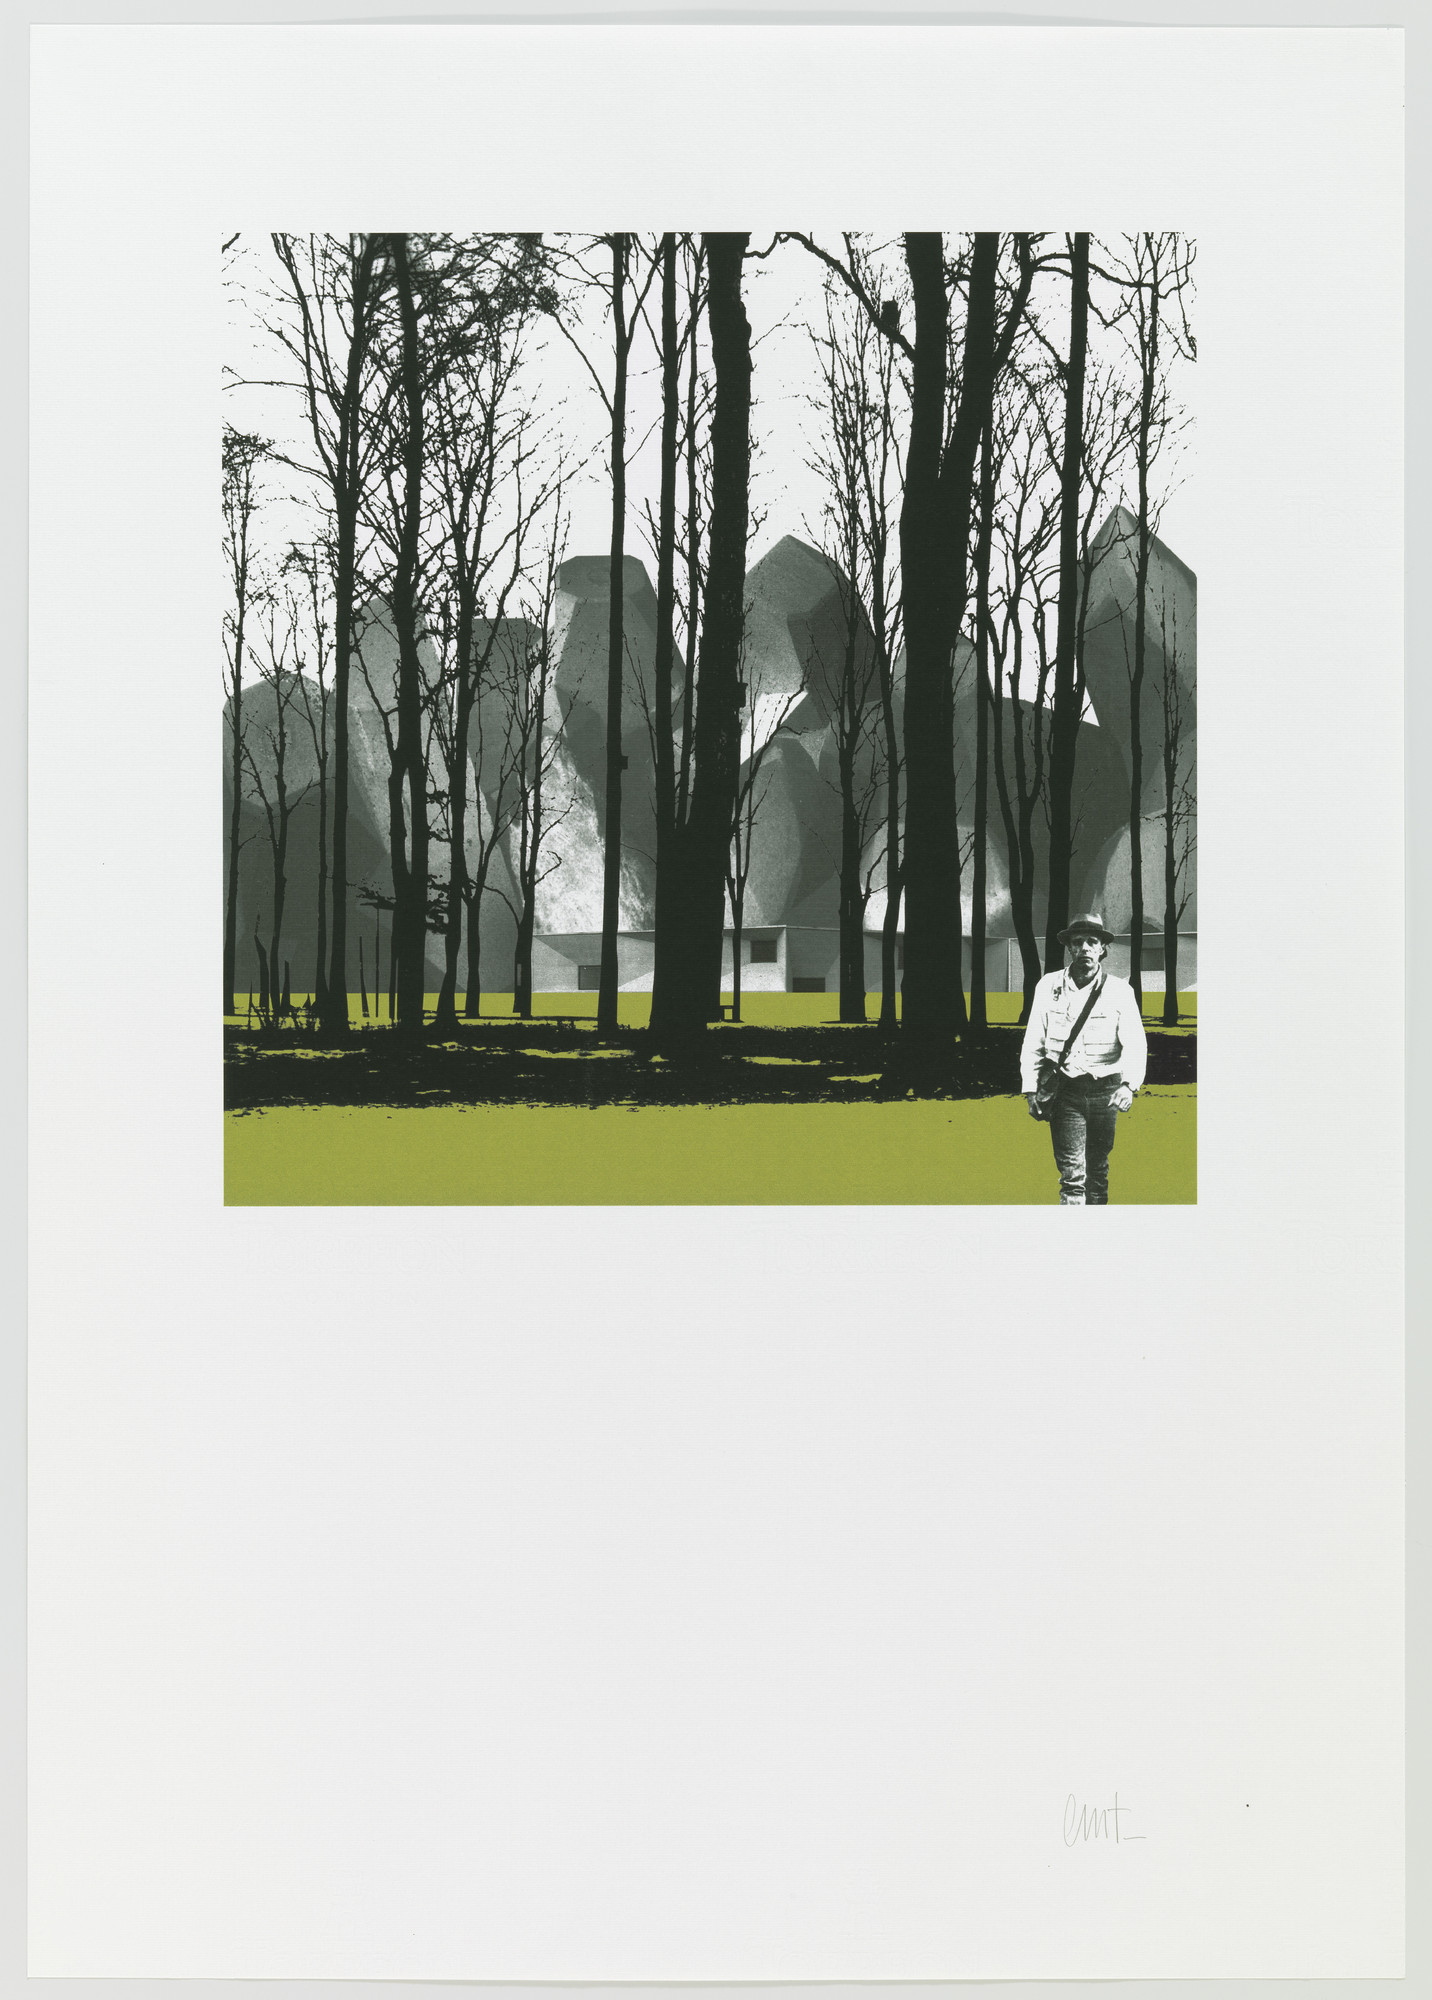 Mansilla+Tuñón, Arquitectos, Madrid. Museum of Cantabria, Santander, Spain. 2002–2009. Print. Gift of the architects.